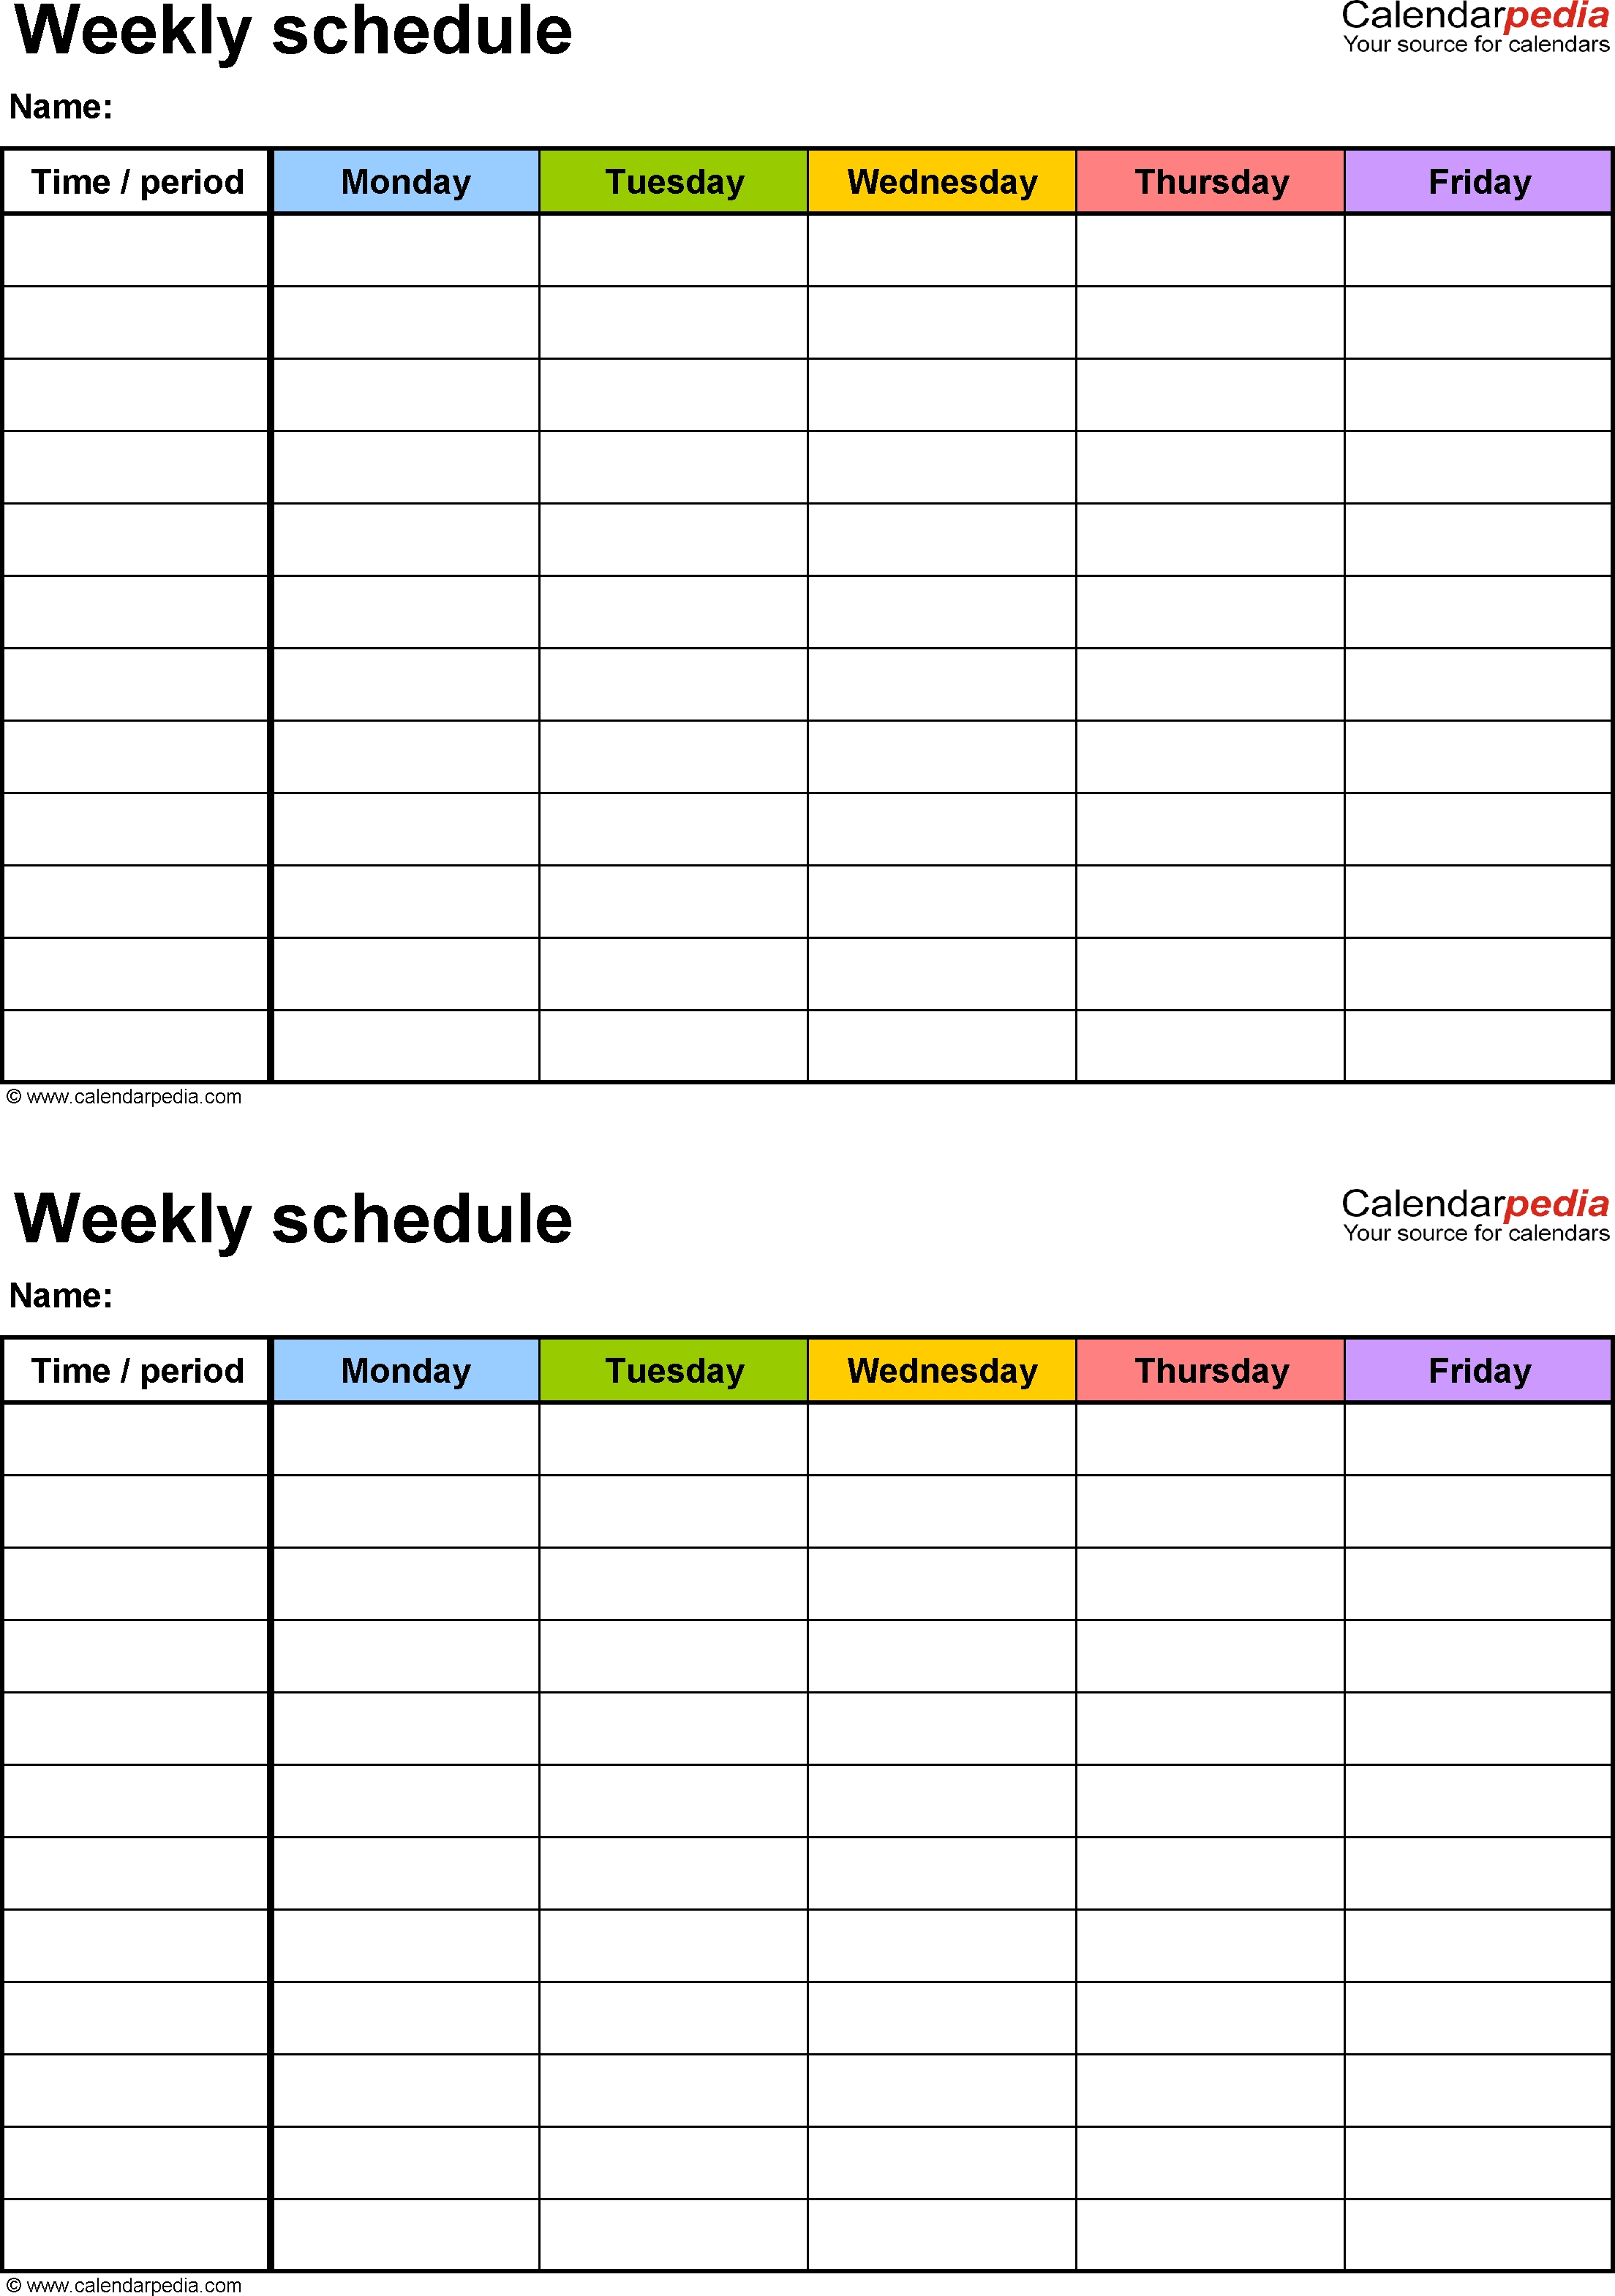 Free Weekly Schedule Templates For Excel - 18 Templates  Weekly Calendar By Hour Printable